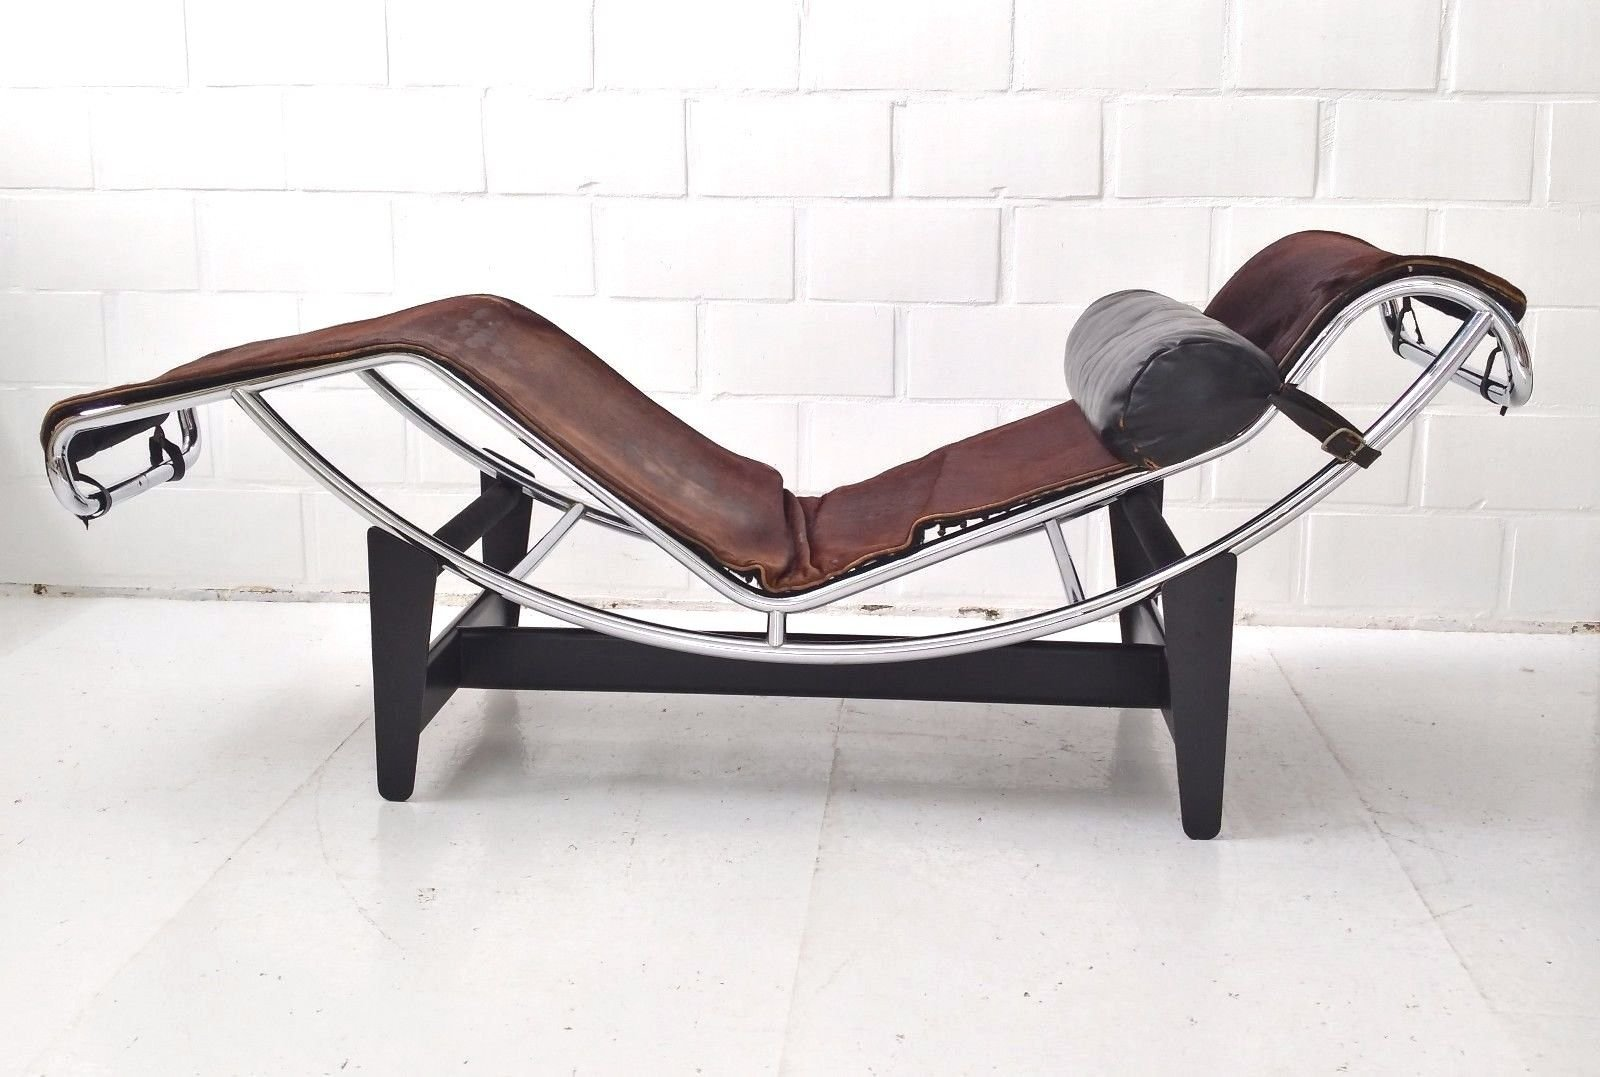 Lc4 chaise longue by le corbusier charlotte perriand for Chaise longue carrefour